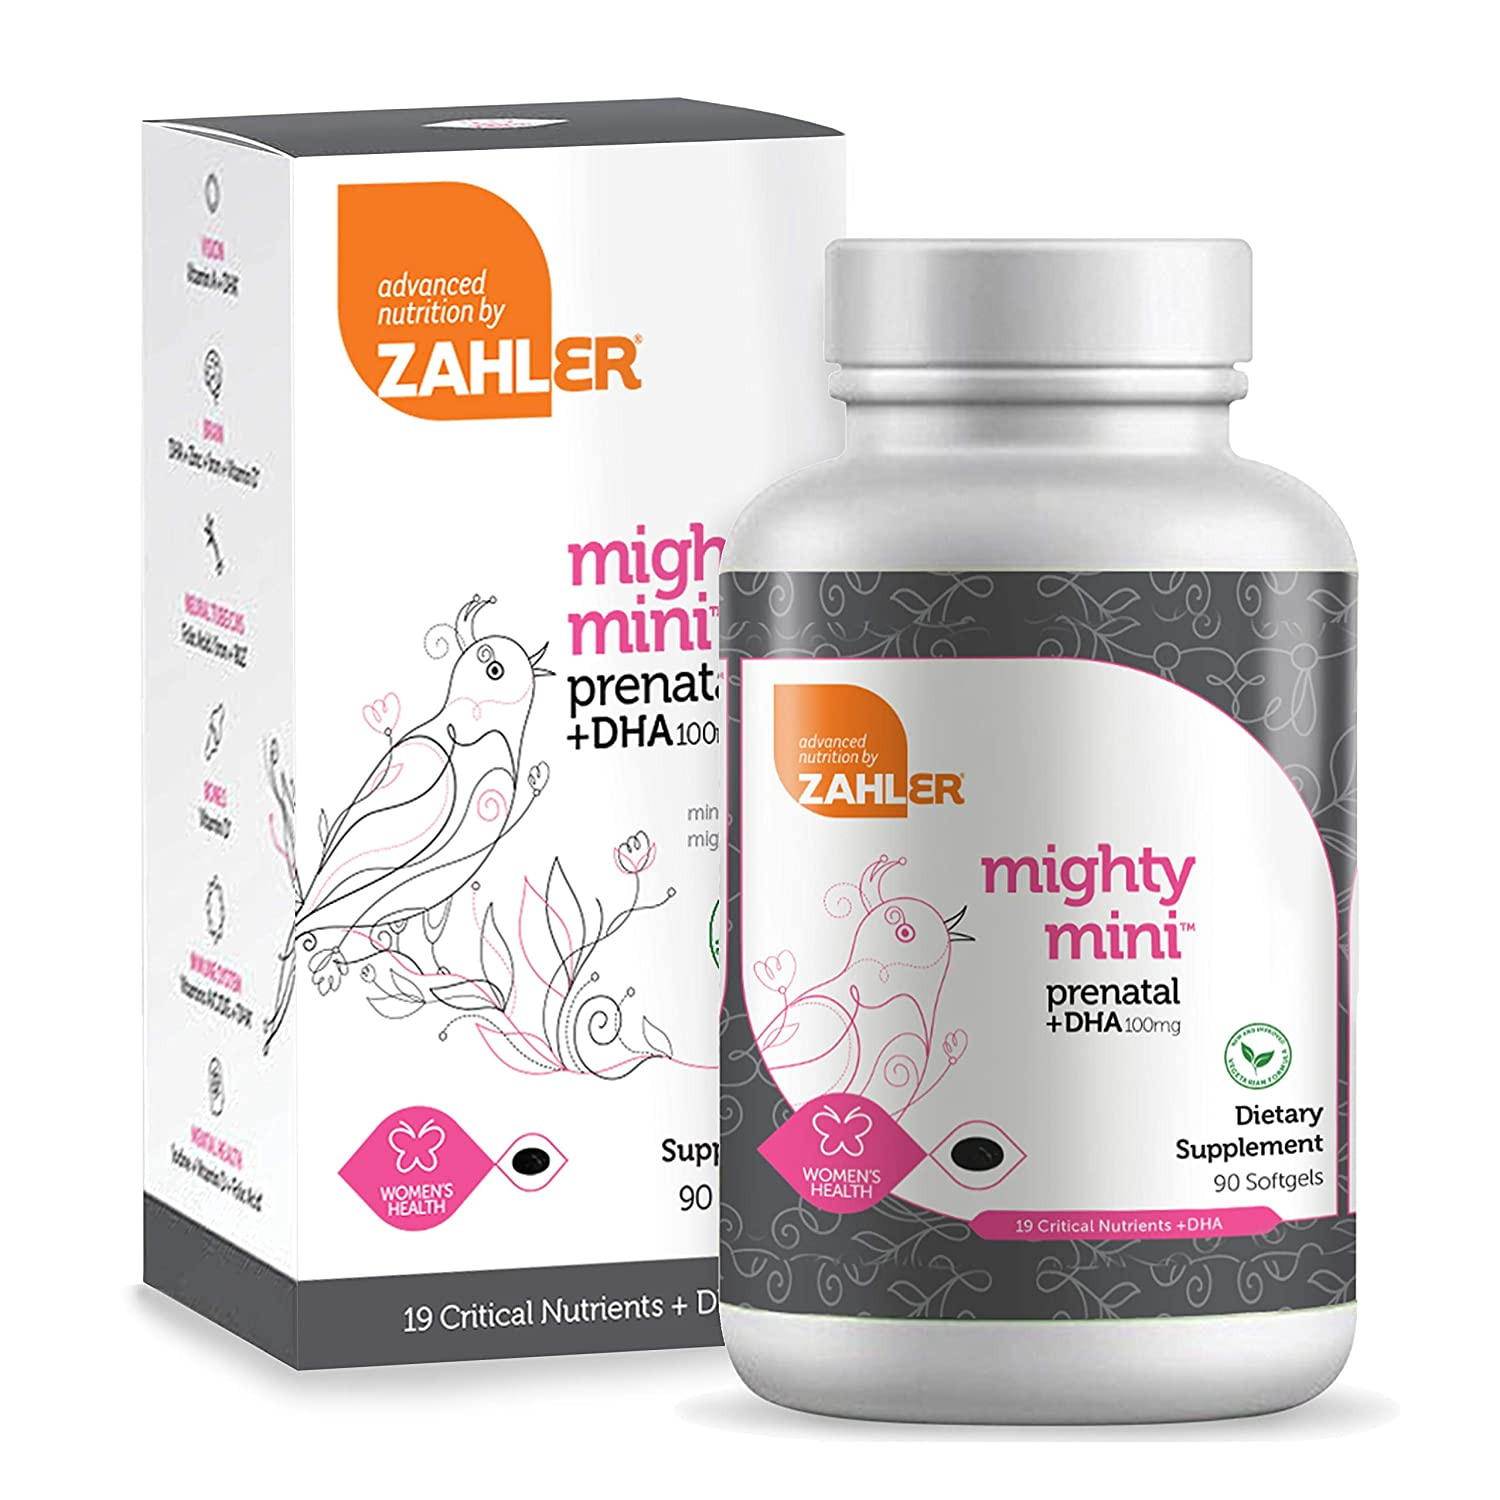 Zahler Mighty Mini Prenatal DHA, One a Day Complete Prenatal Vitamins for Mother and Child, Prenatal with DHA Supports Brain Development in Babies, Certified Kosher, 90 Softgels